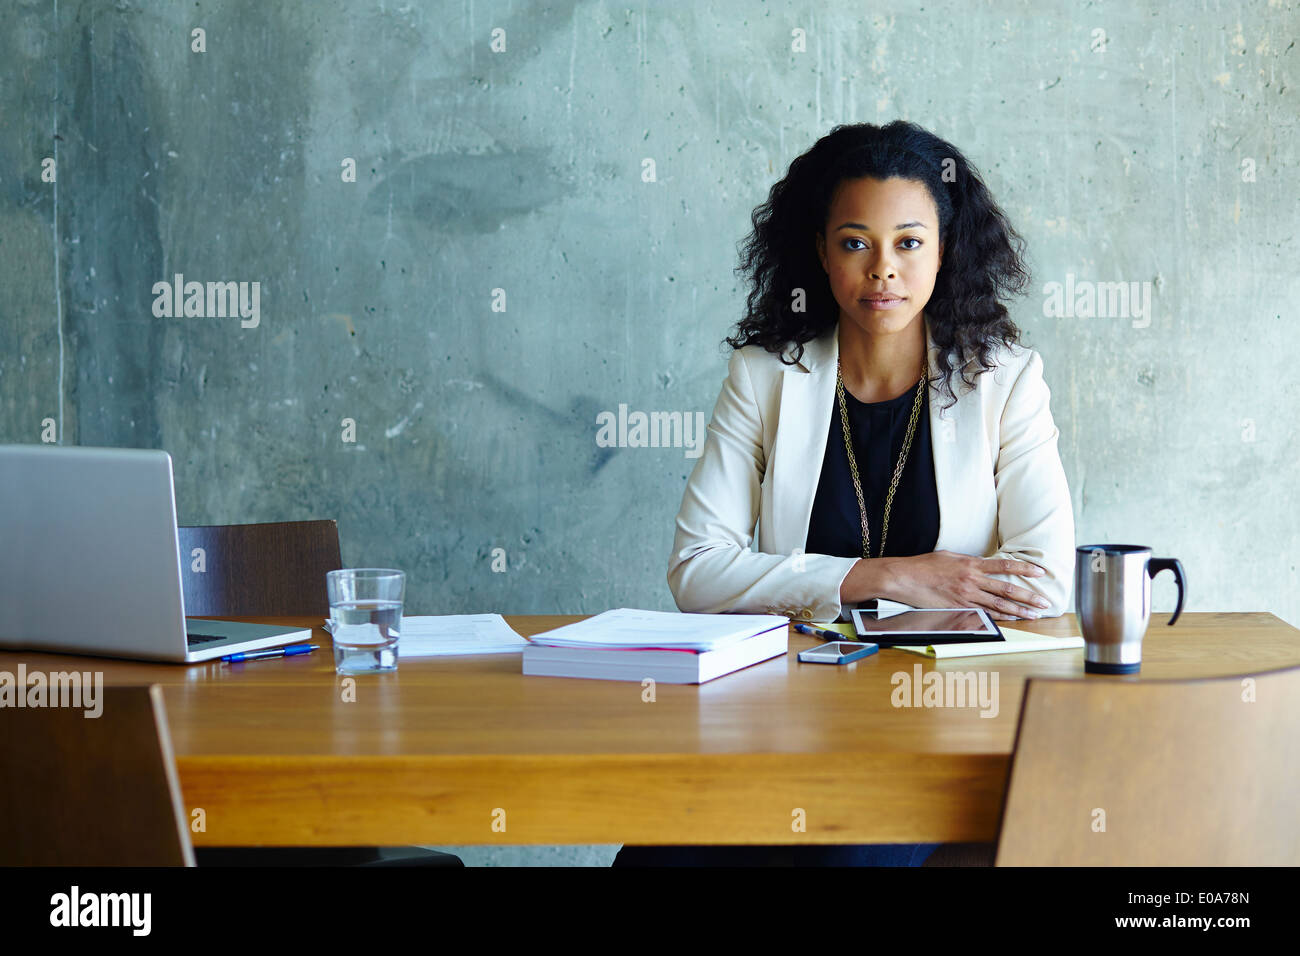 Portrait of young businesswoman at conference table - Stock Image